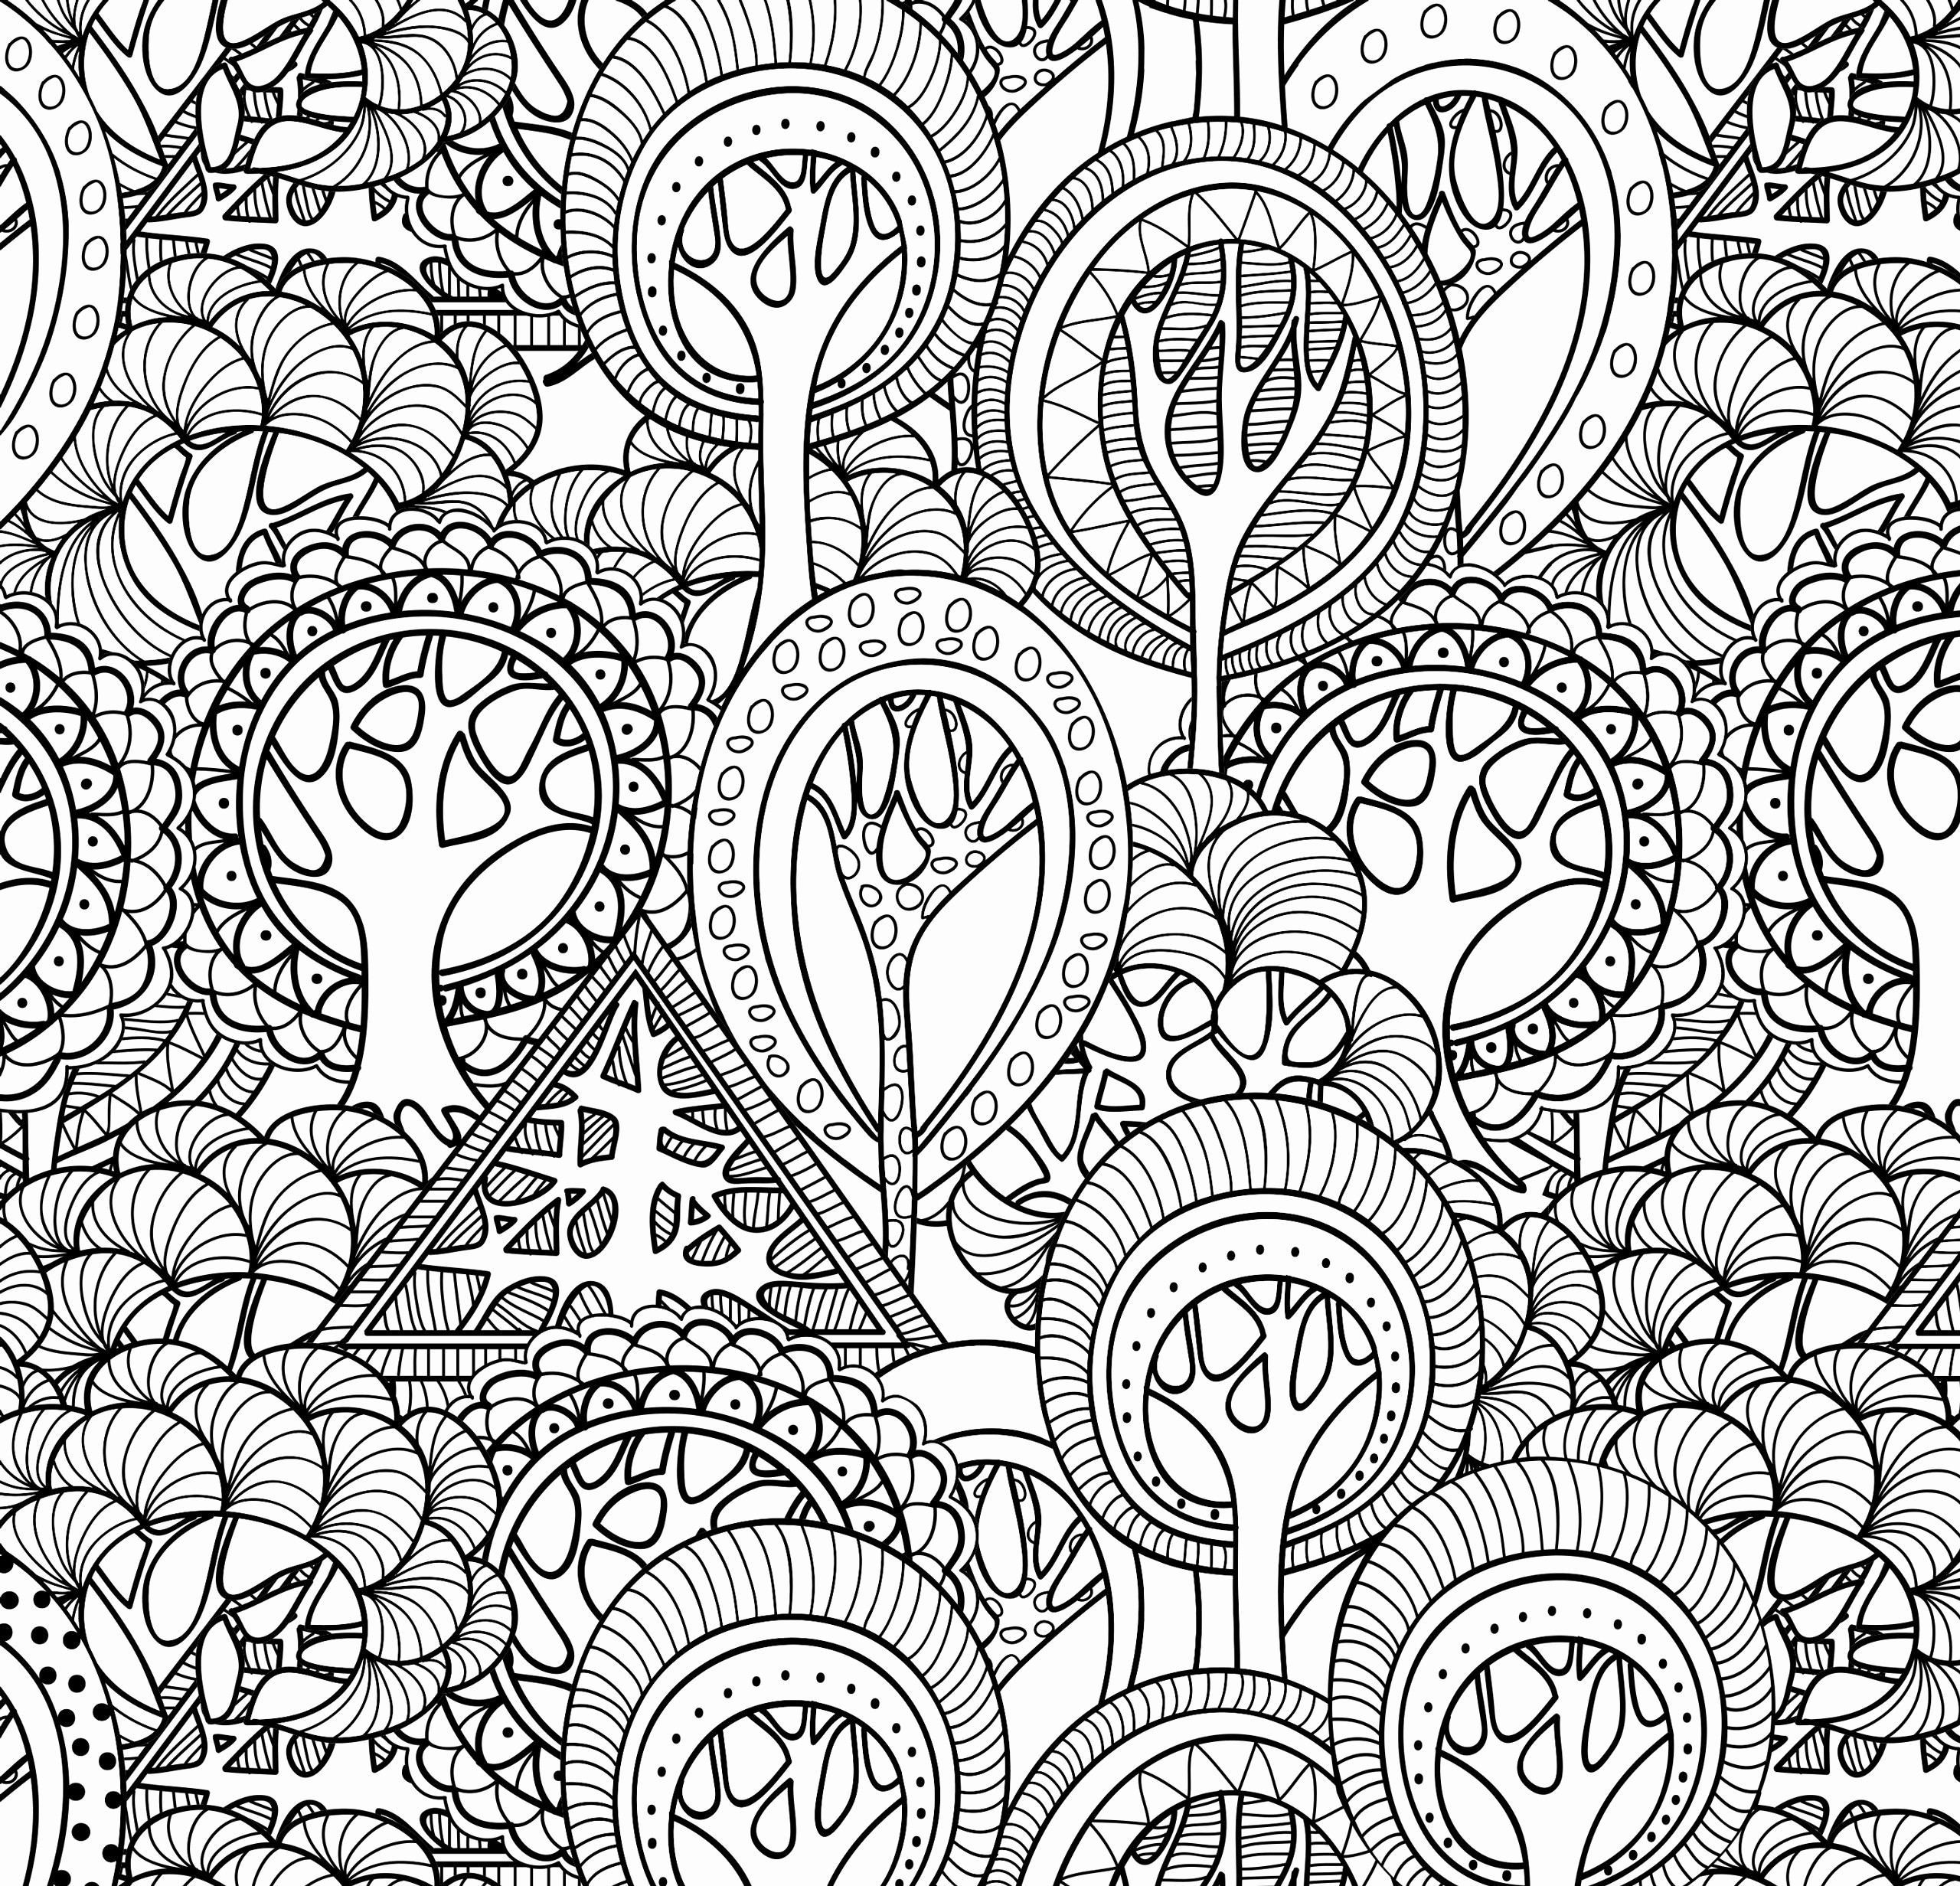 best colouring pages to print complex coloring pages for teens and adults best pages to print best colouring